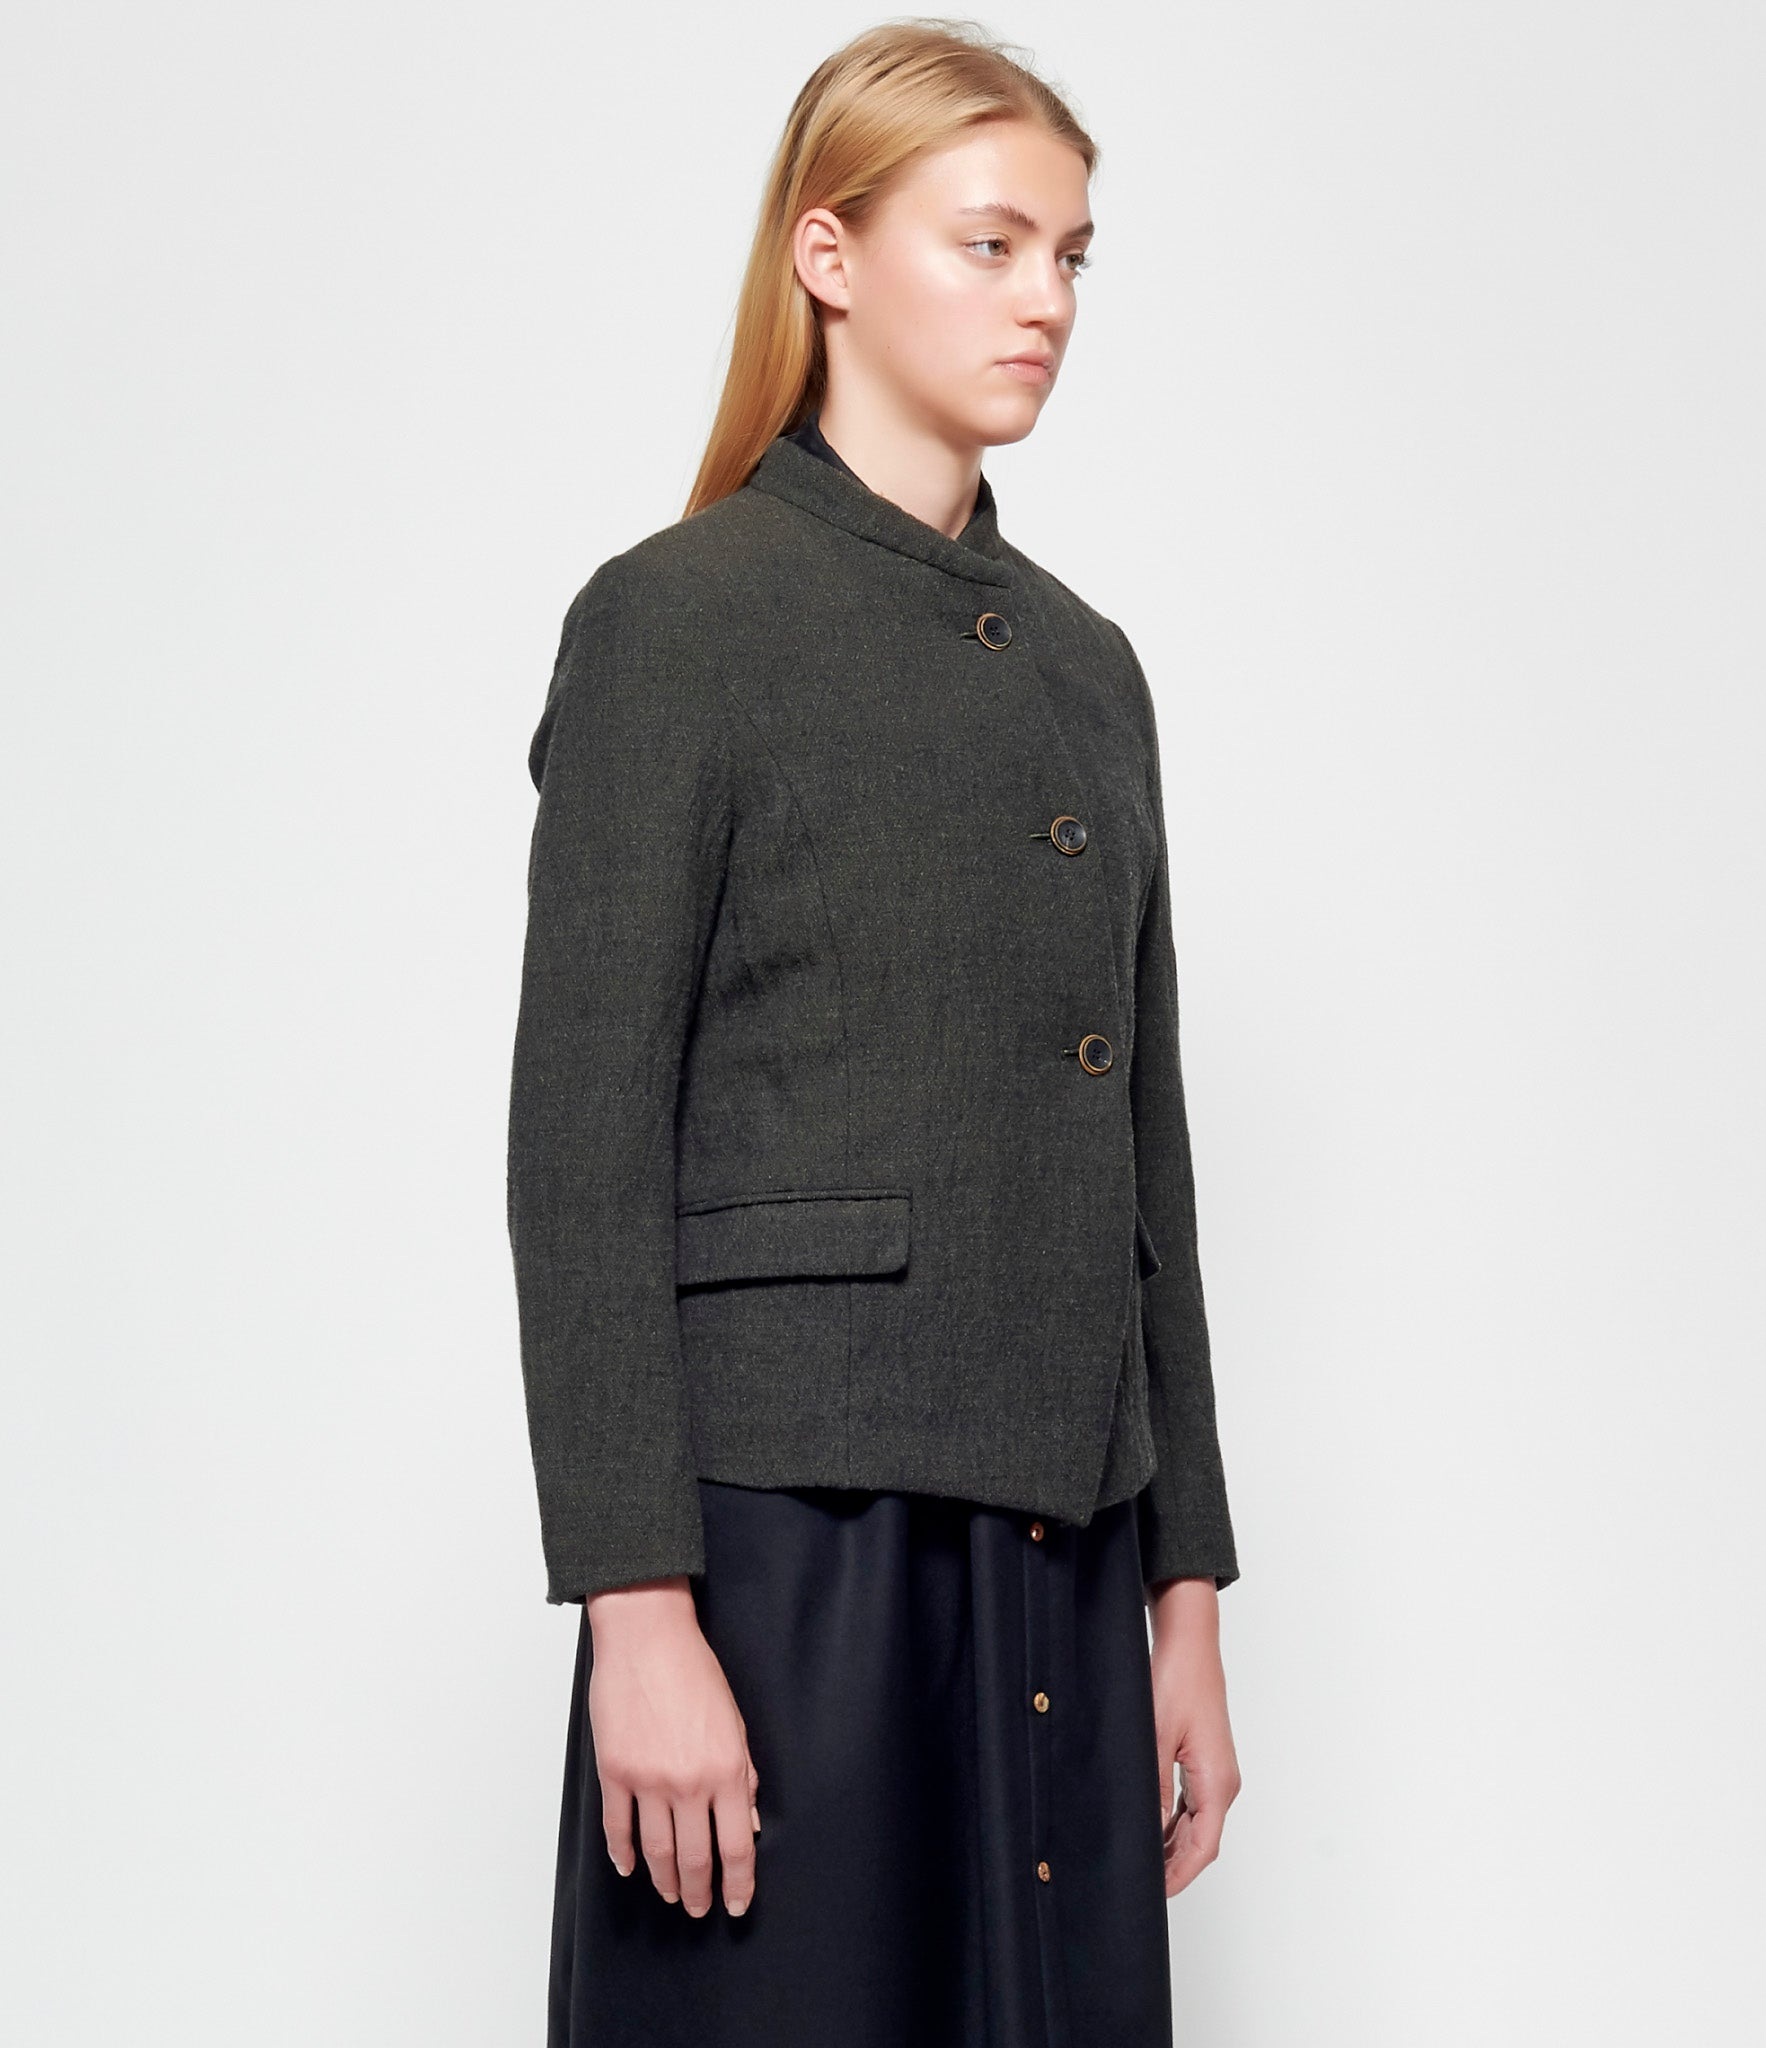 Individual Sentiments Stainless Wool Tweed Jacket